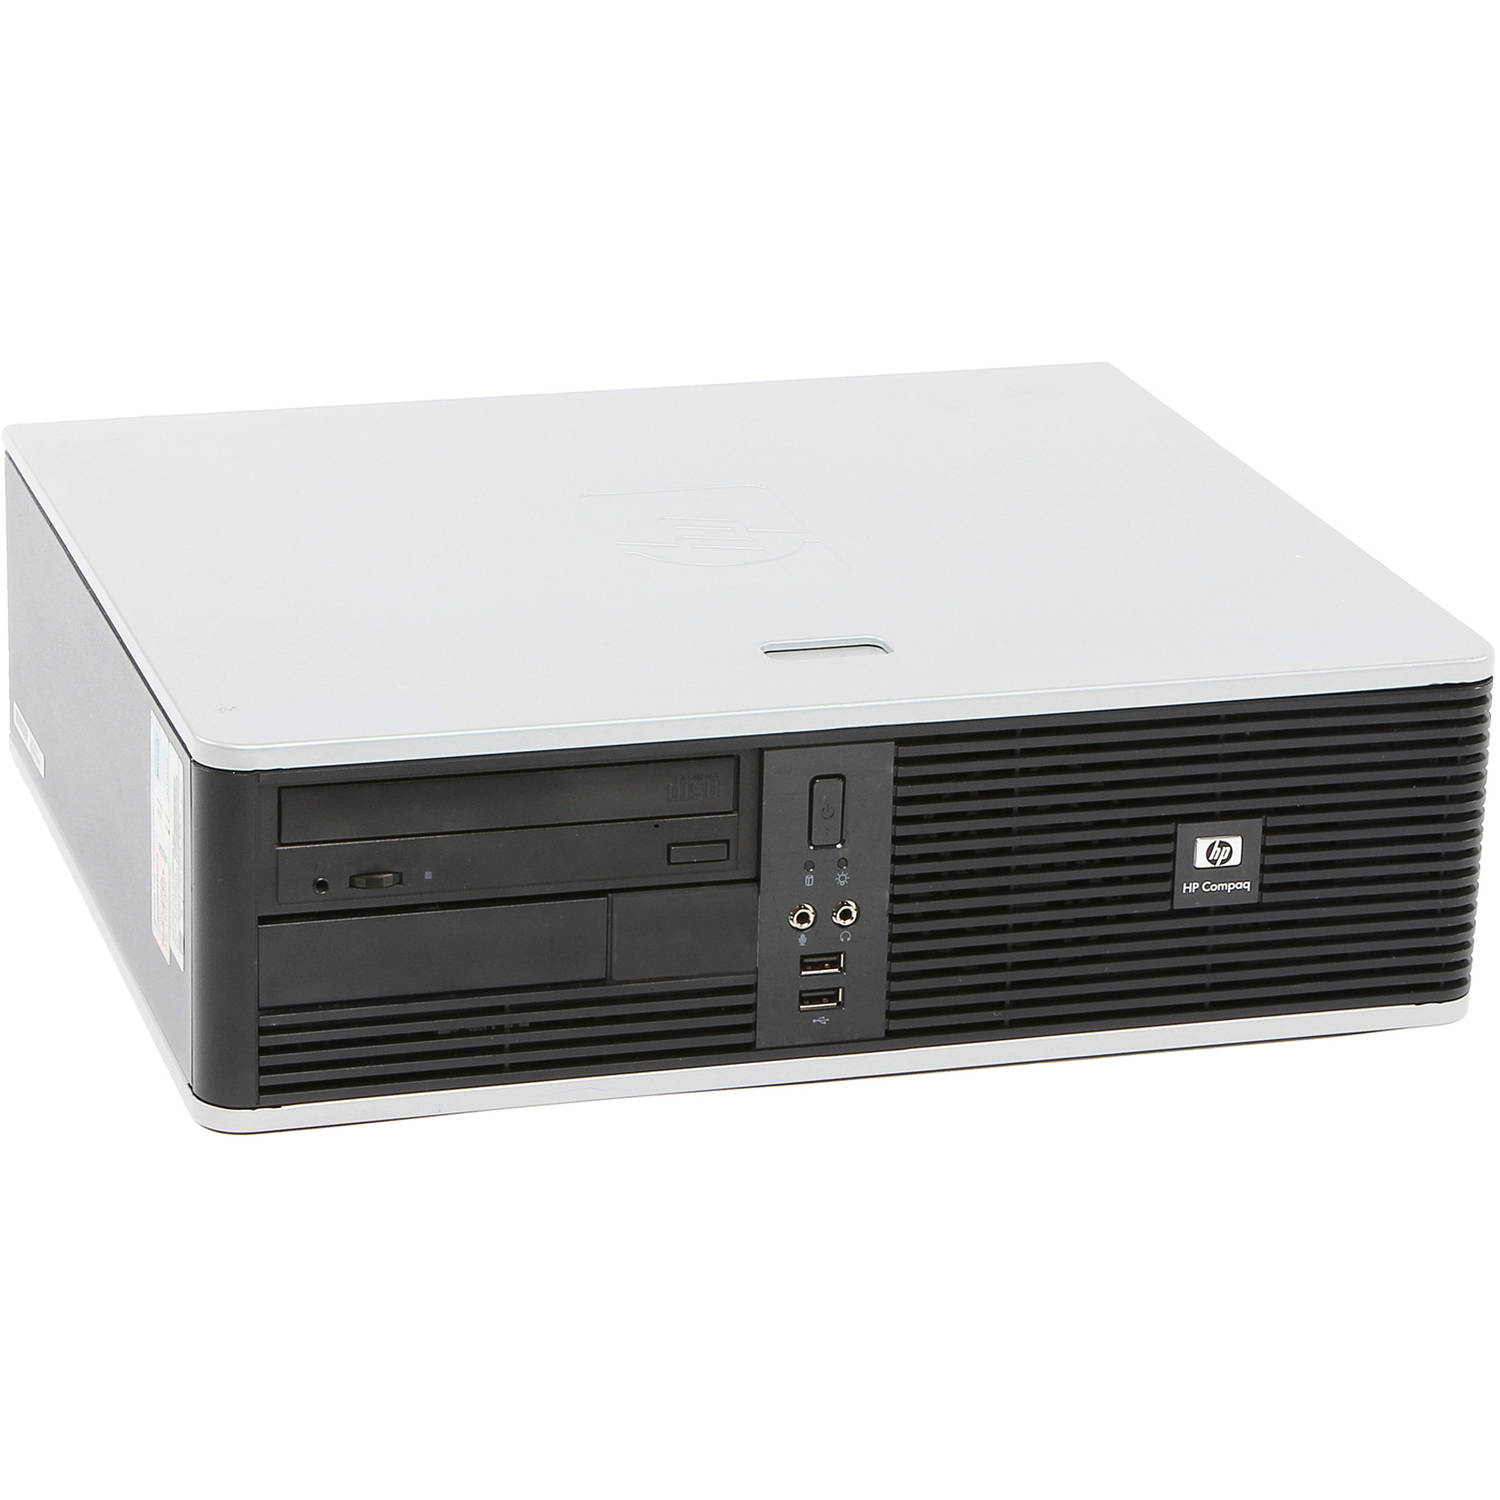 Refurbished HP DC5800 Small Form Factor Desktop PC with Intel Dual Core Processor, 2GB Memory, 80GB Hard Drive and Windows 7 Home Premium (Monitor Not Included)